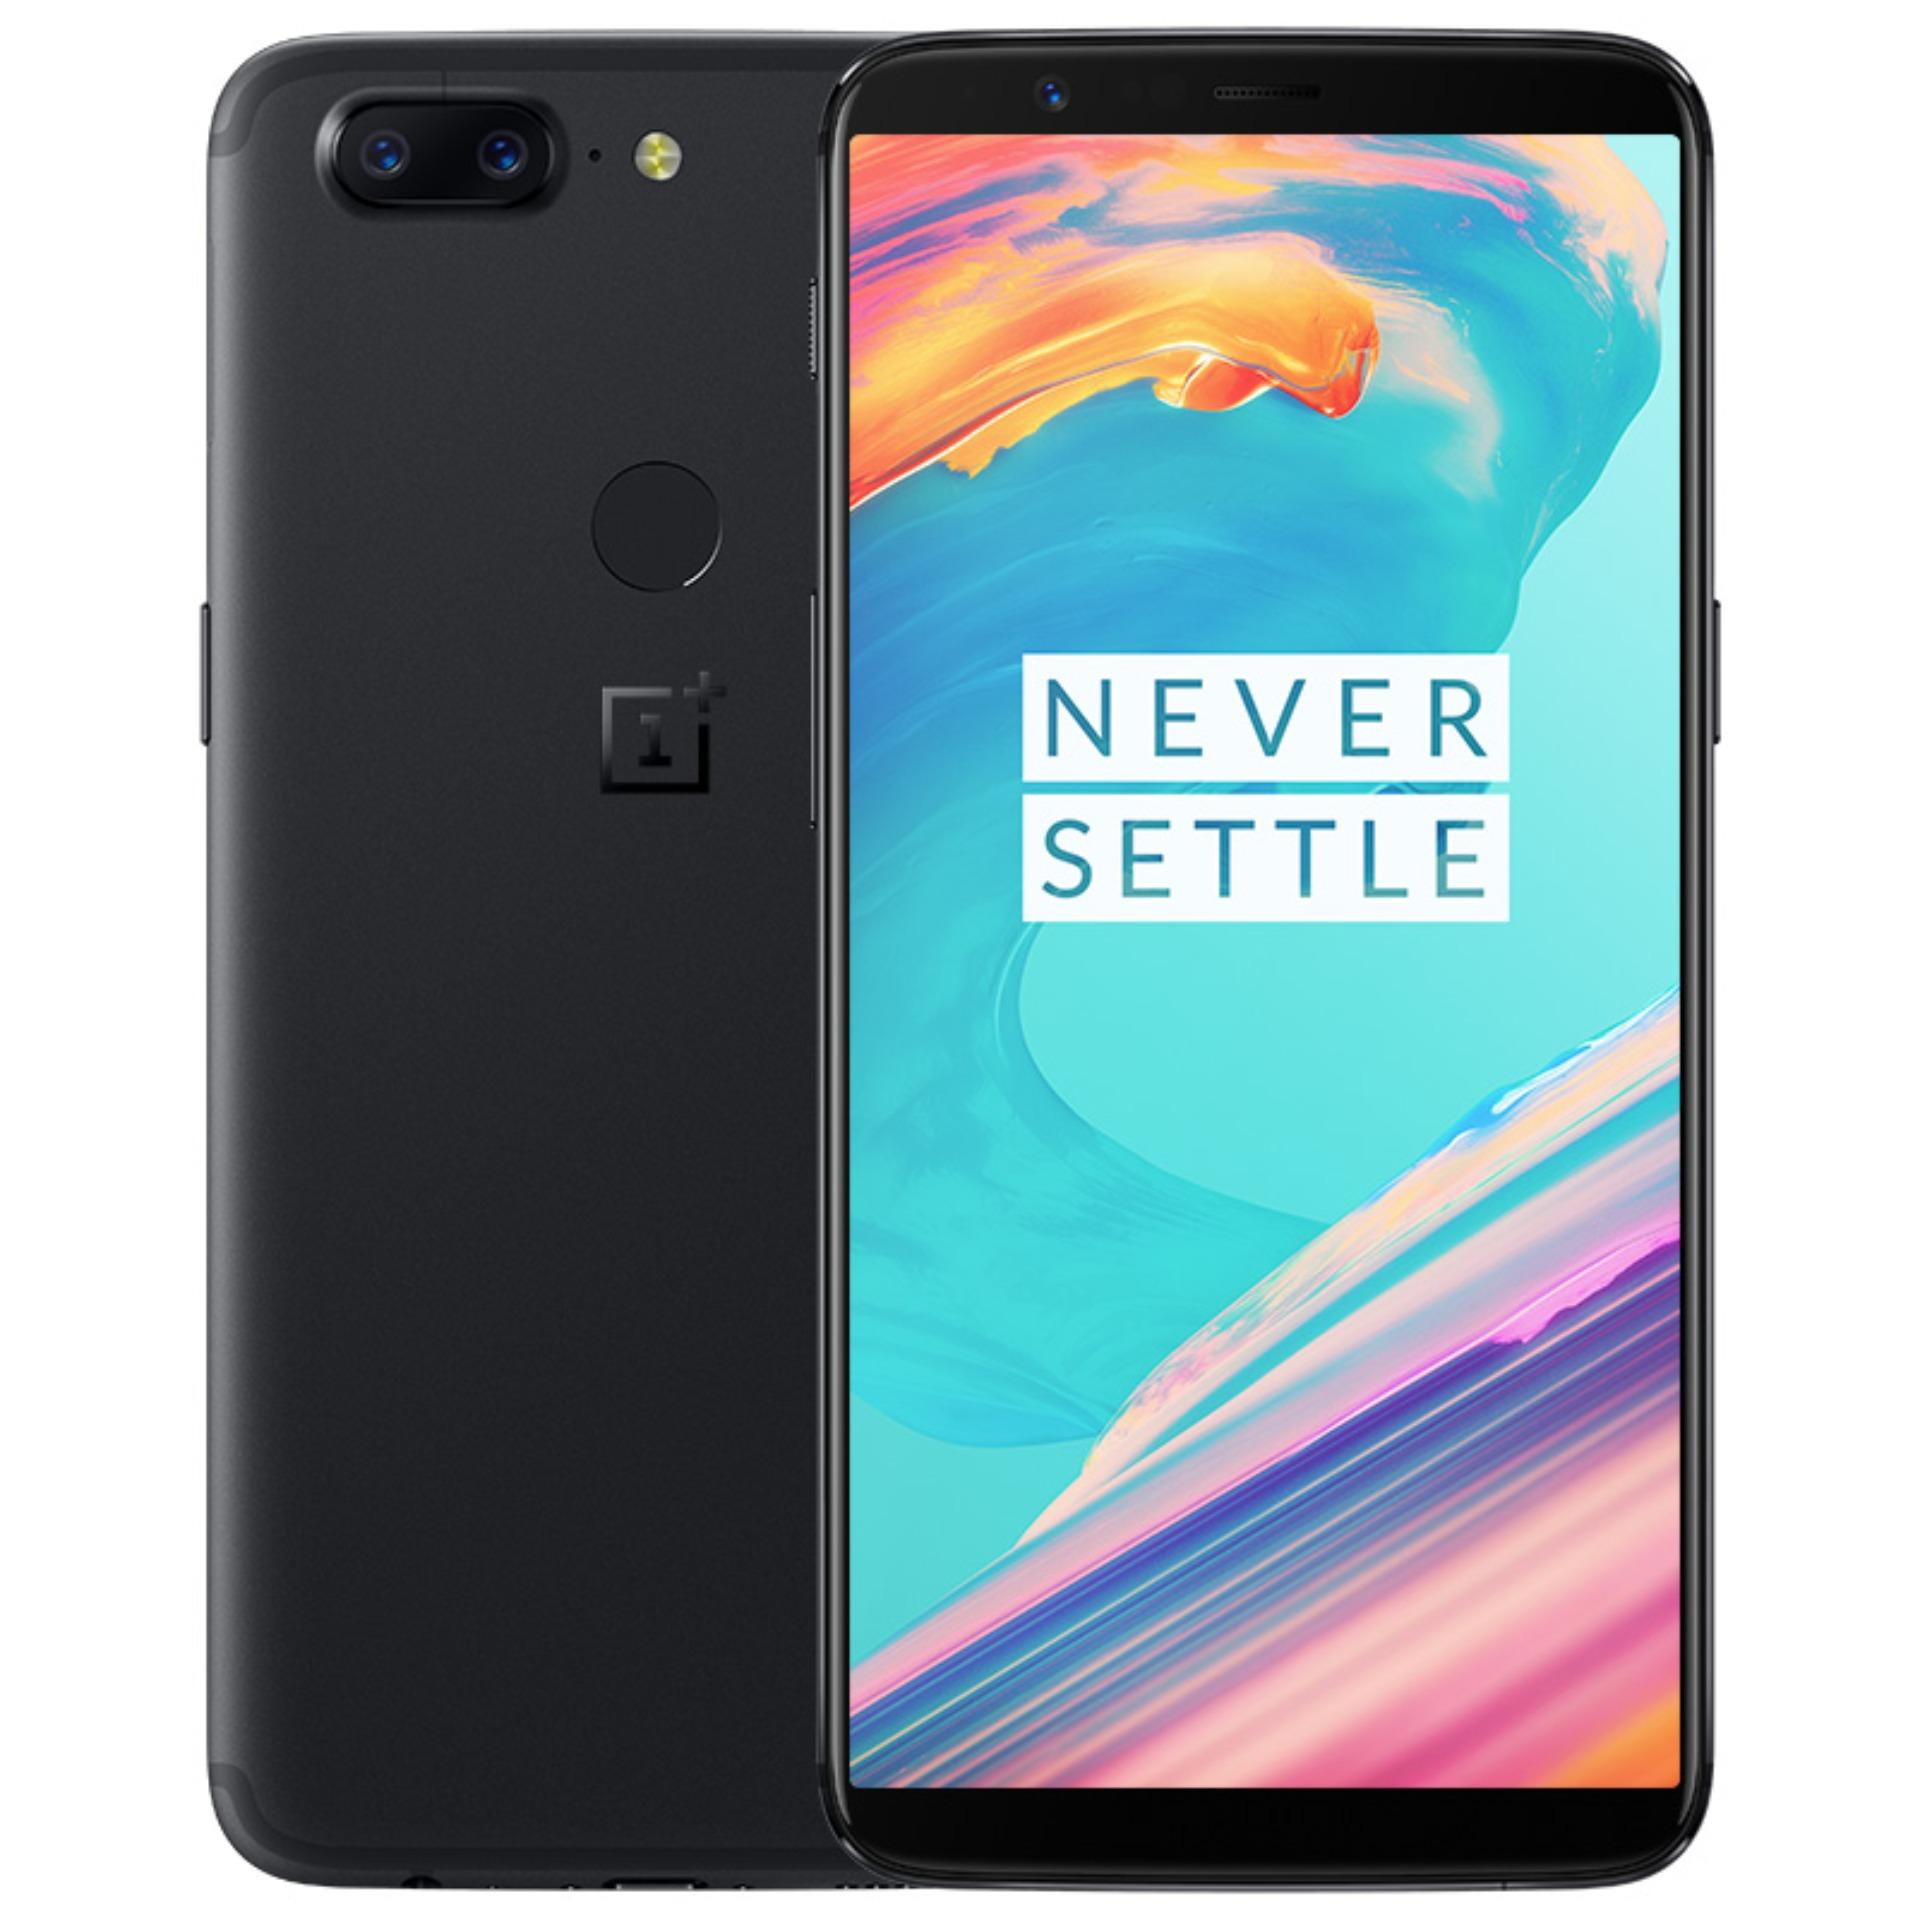 Where Can I Buy Oneplus 5T Midnight Black 6Gb Ram 64Gb Rom Brand New Local Set